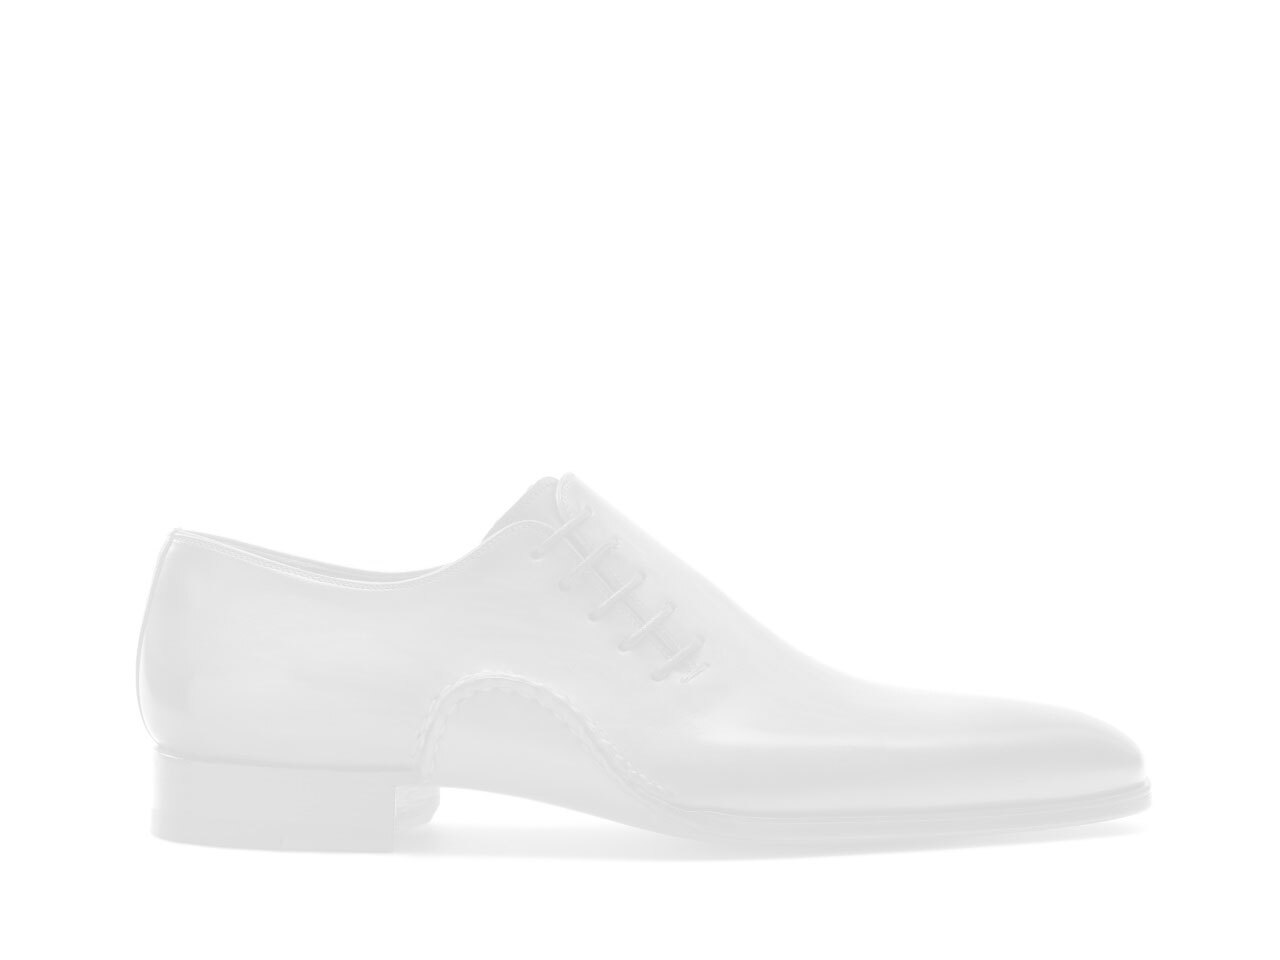 Side view of the Magnanni Segovia Curri Men's Oxford Shoes